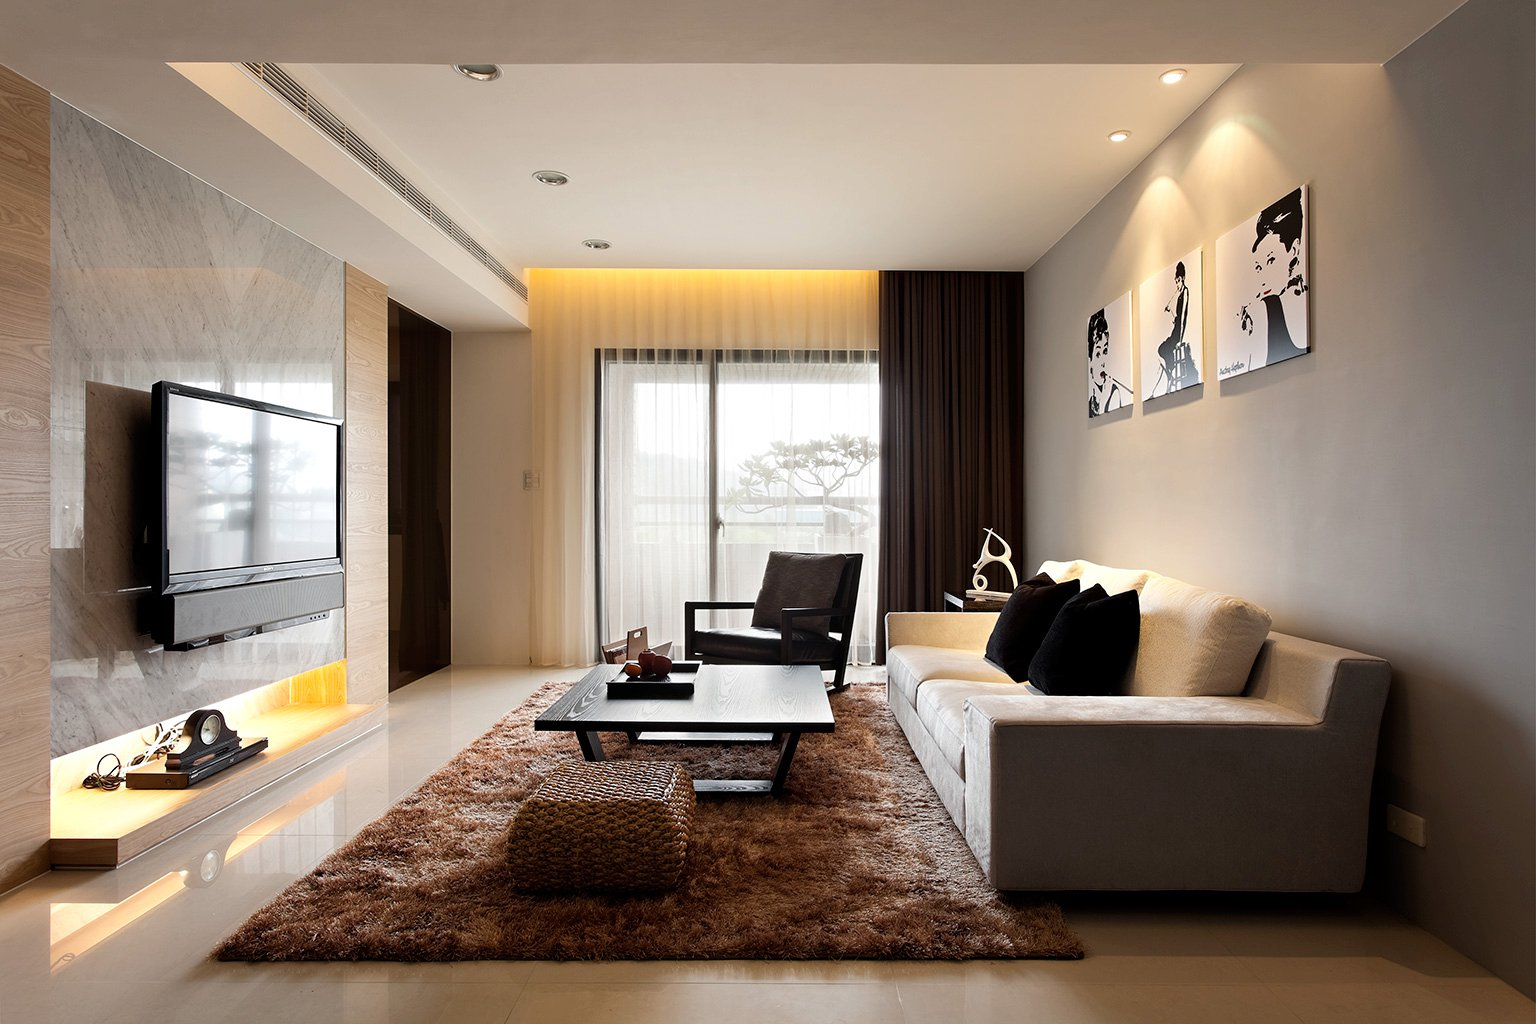 Living Room Design Ideas And Photos modern living room design ideas